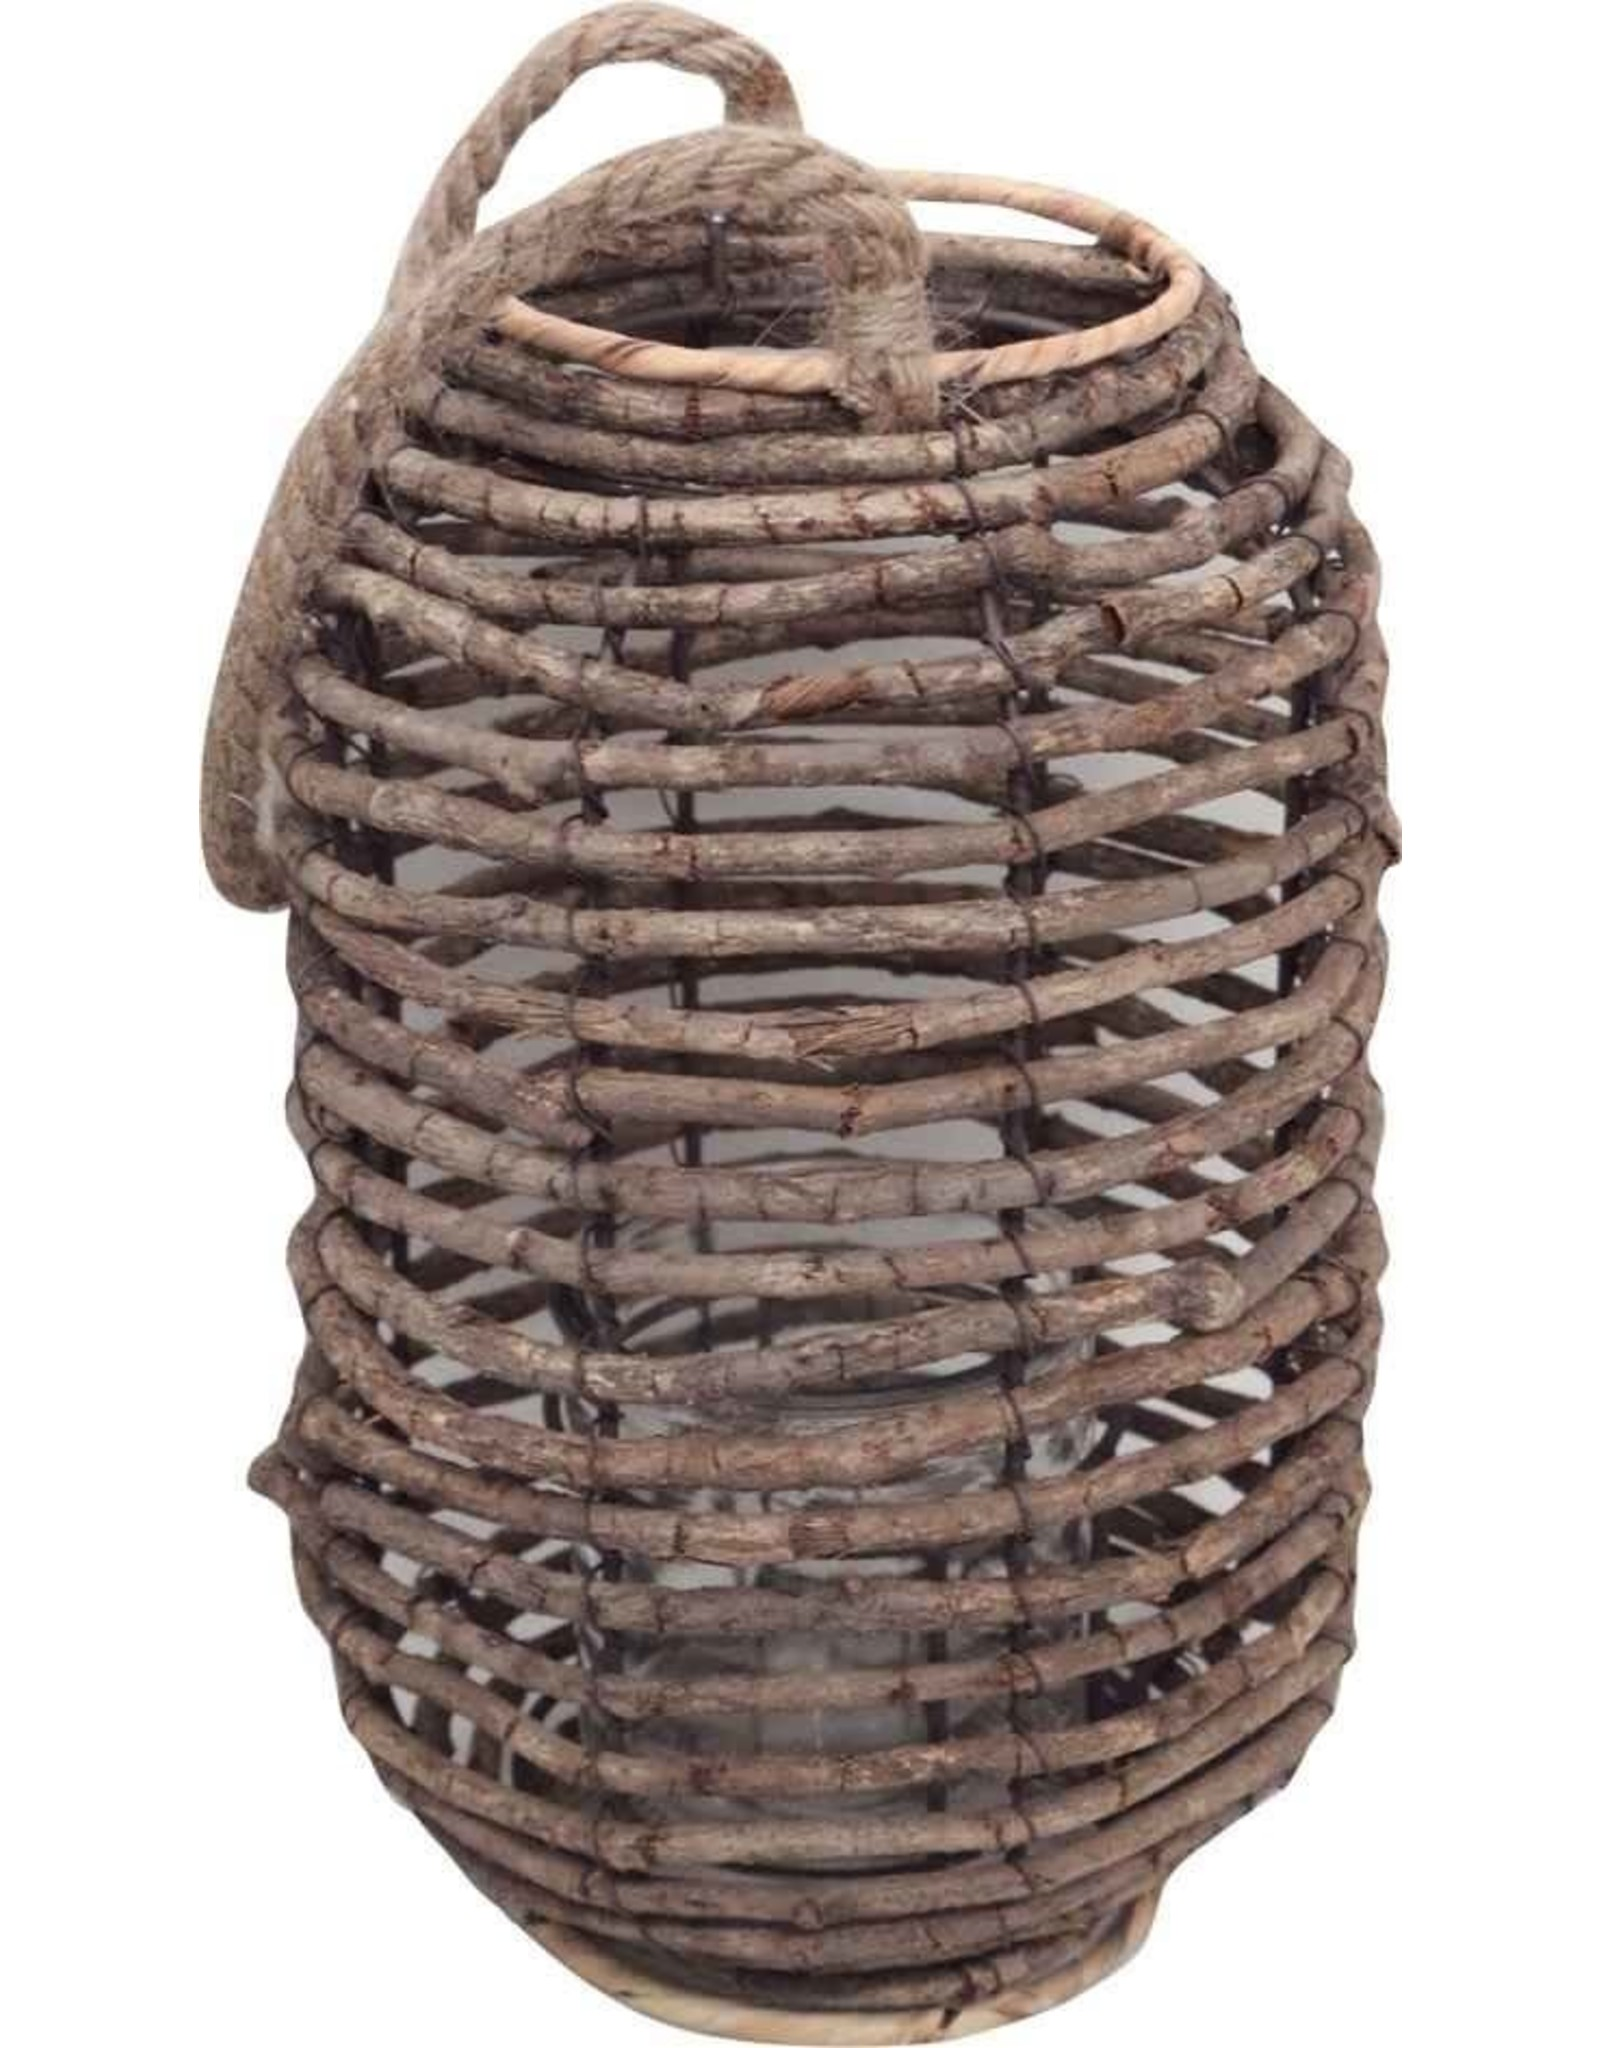 TCE Wicker Lantern Candle Holder